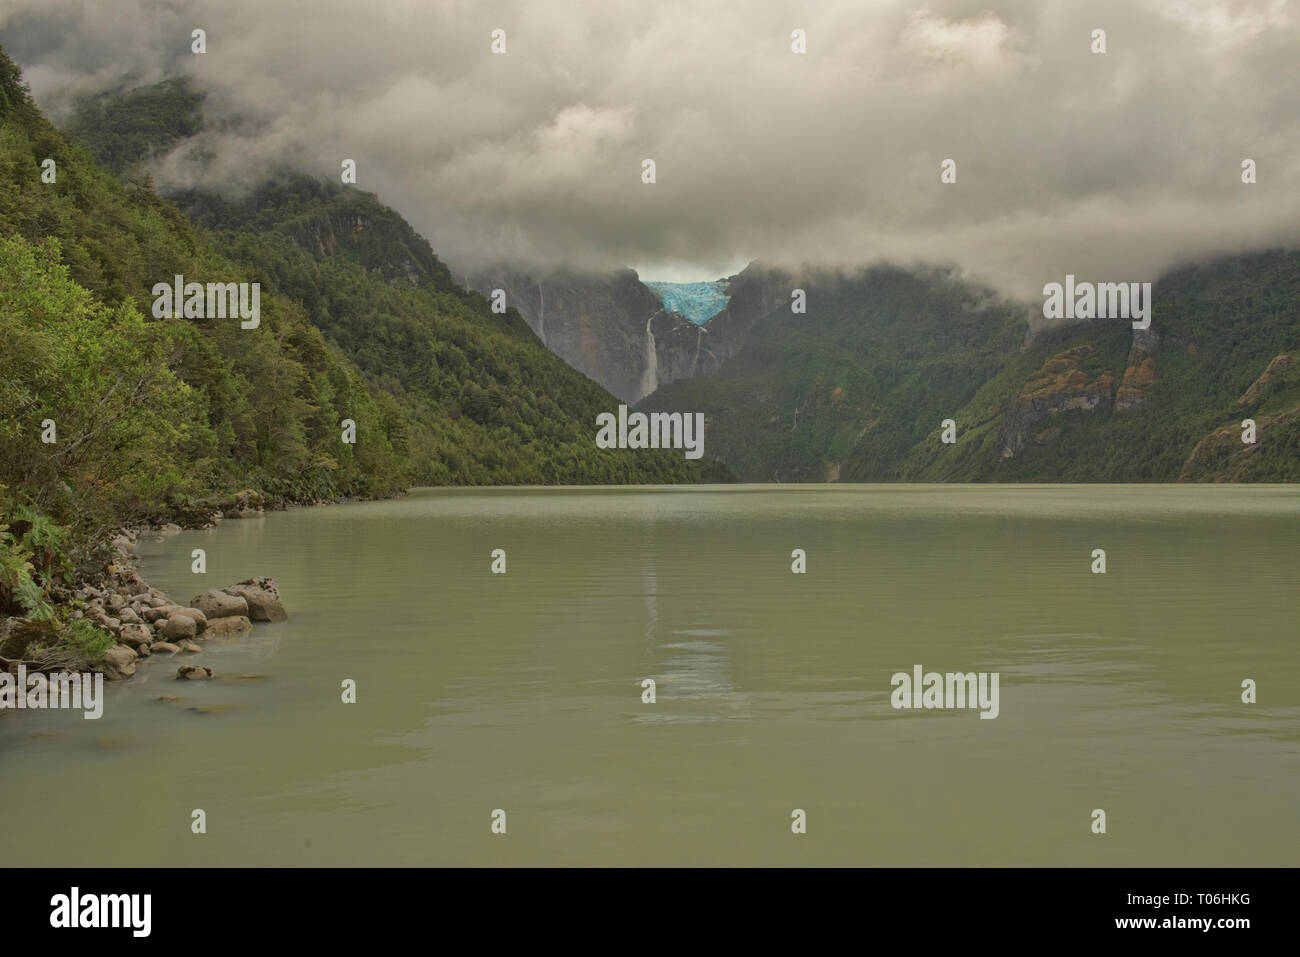 Ventisquero Colgante hanging glacier above Laguna Tempanos in Queulat National Park, Patagonia, Aysen, Chile - Stock Image